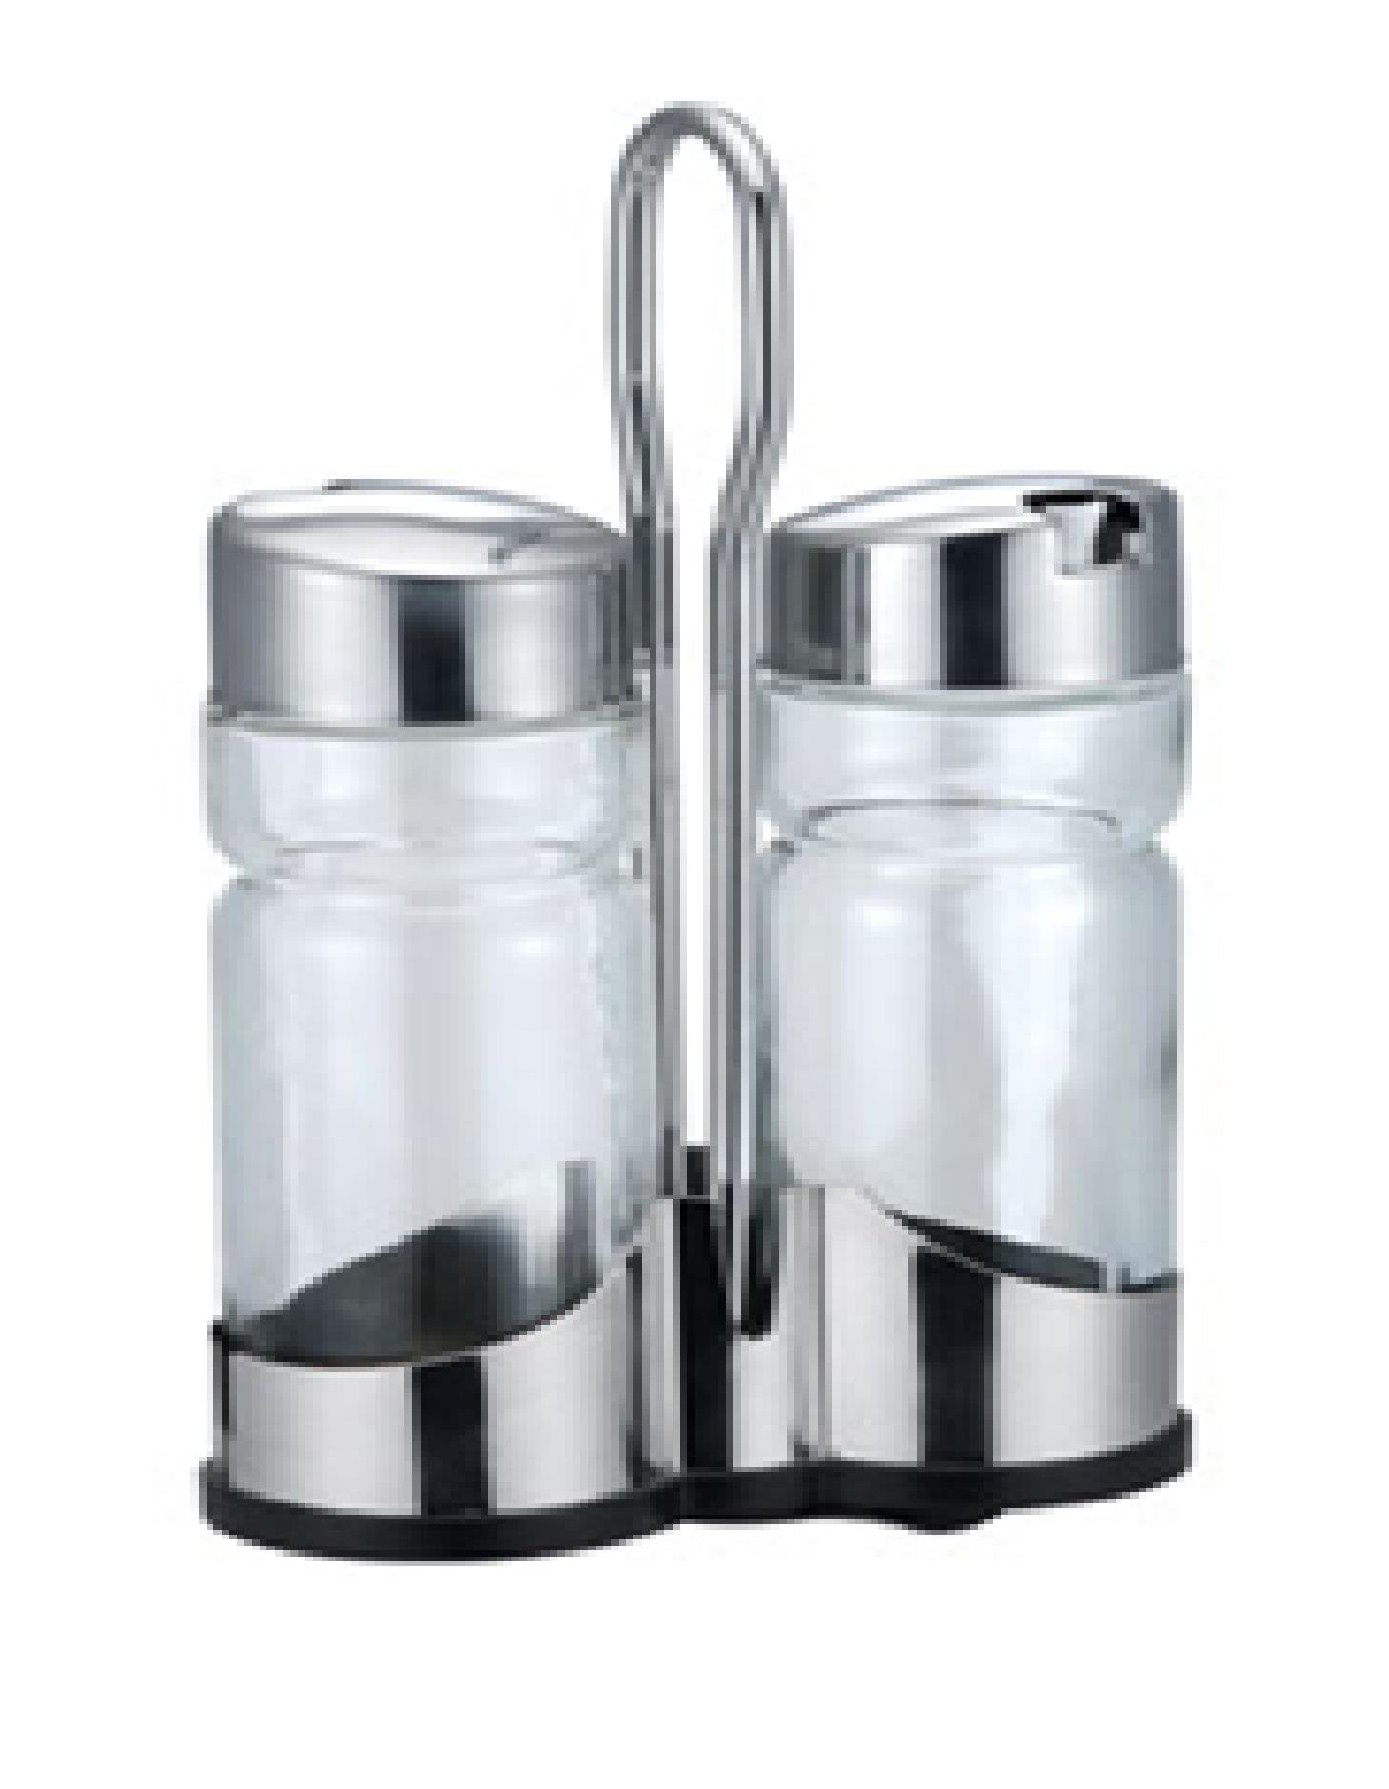 SALT&pepper sets